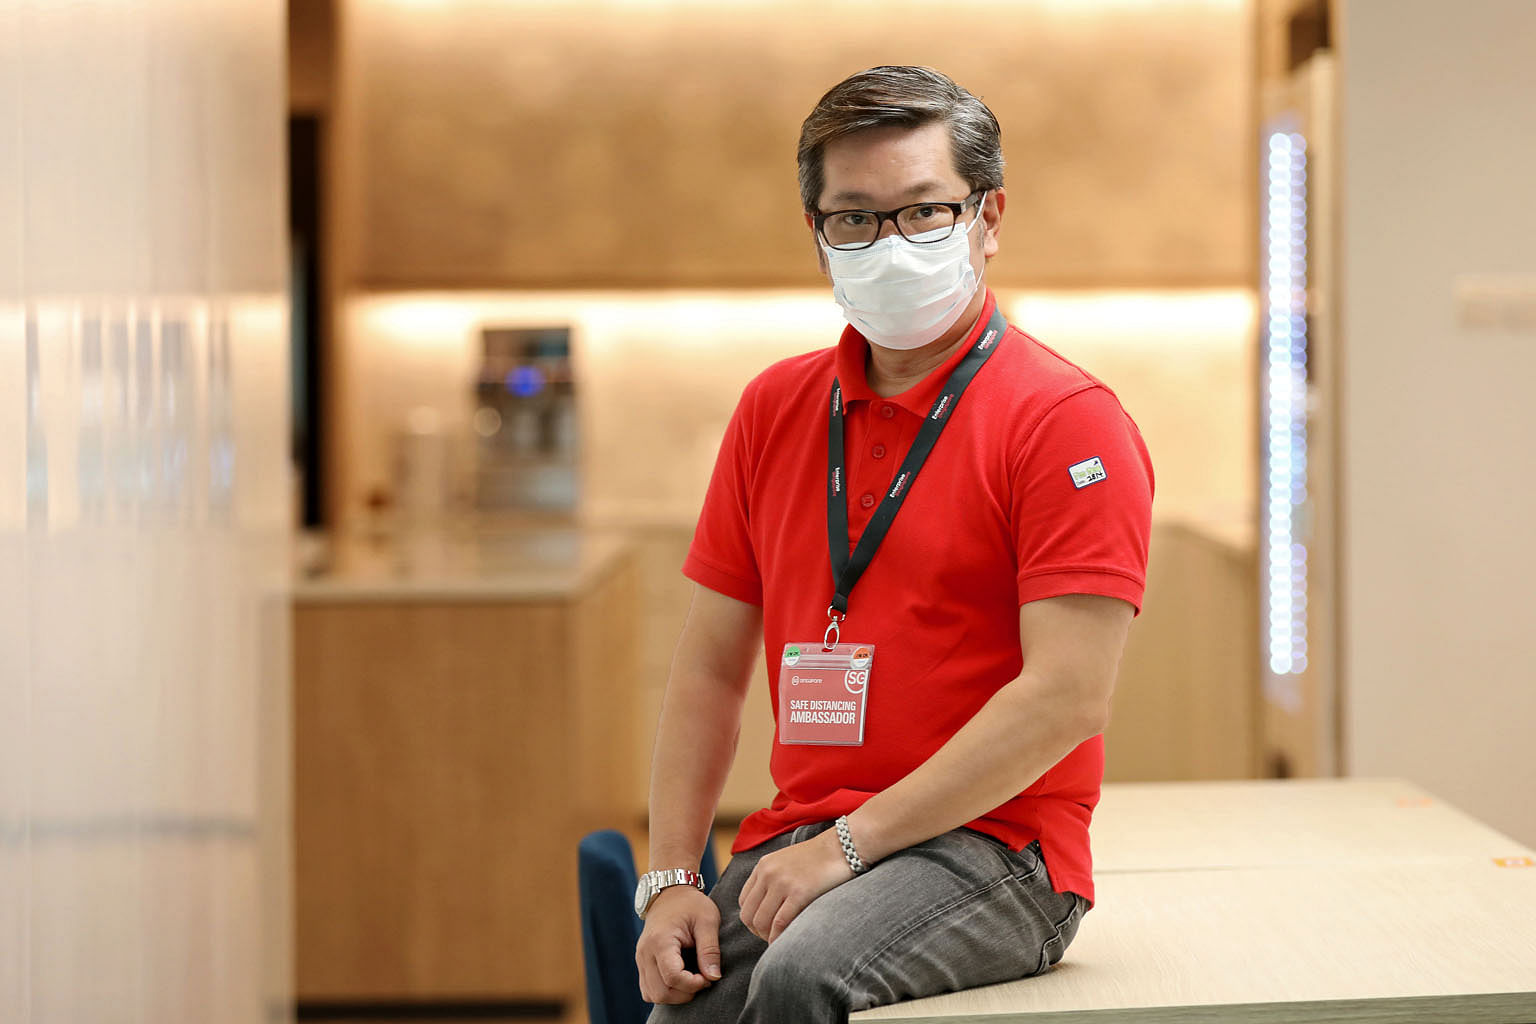 Mr Richard Lim, who works as a tour manager, signed up to be a safe distancing ambassador with Enterprise Singapore earlier this month, after the travel industry came to a halt. He now patrols Jurong Point mall five to six days a week.